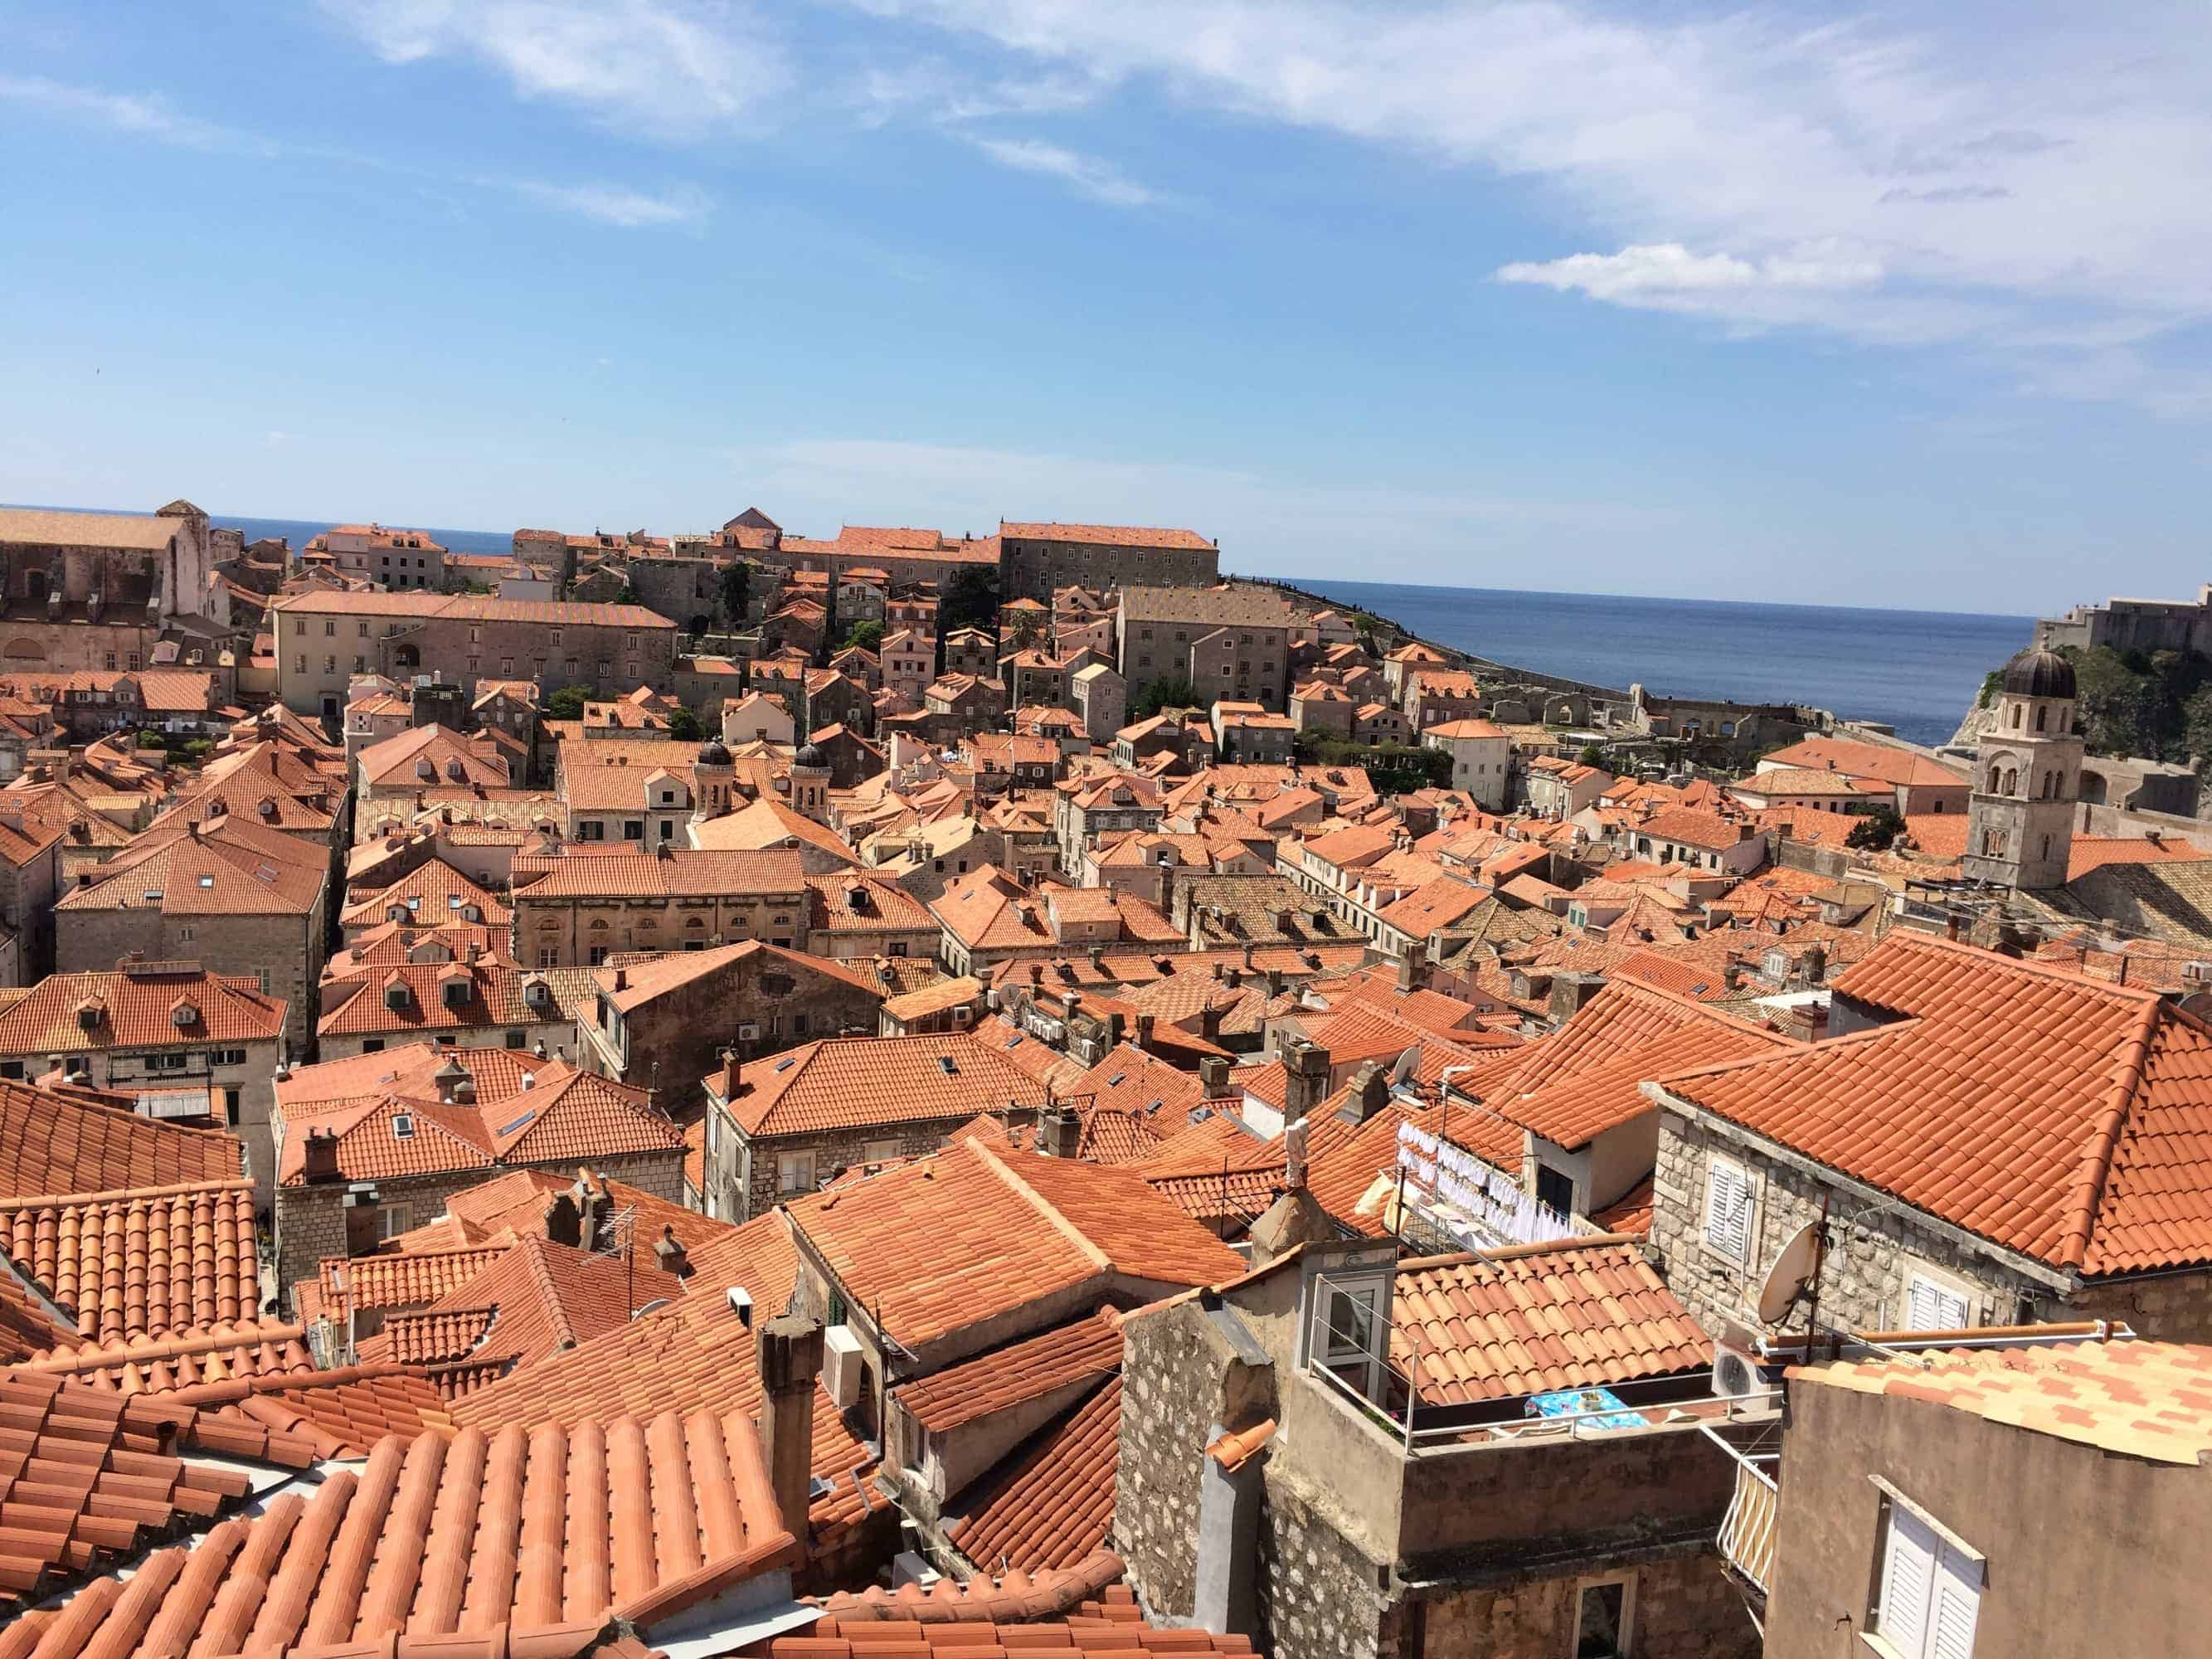 Discover dubrovnik old town guided walking tour - Discover Dubrovnik With Your Quality Licensed Local Guide